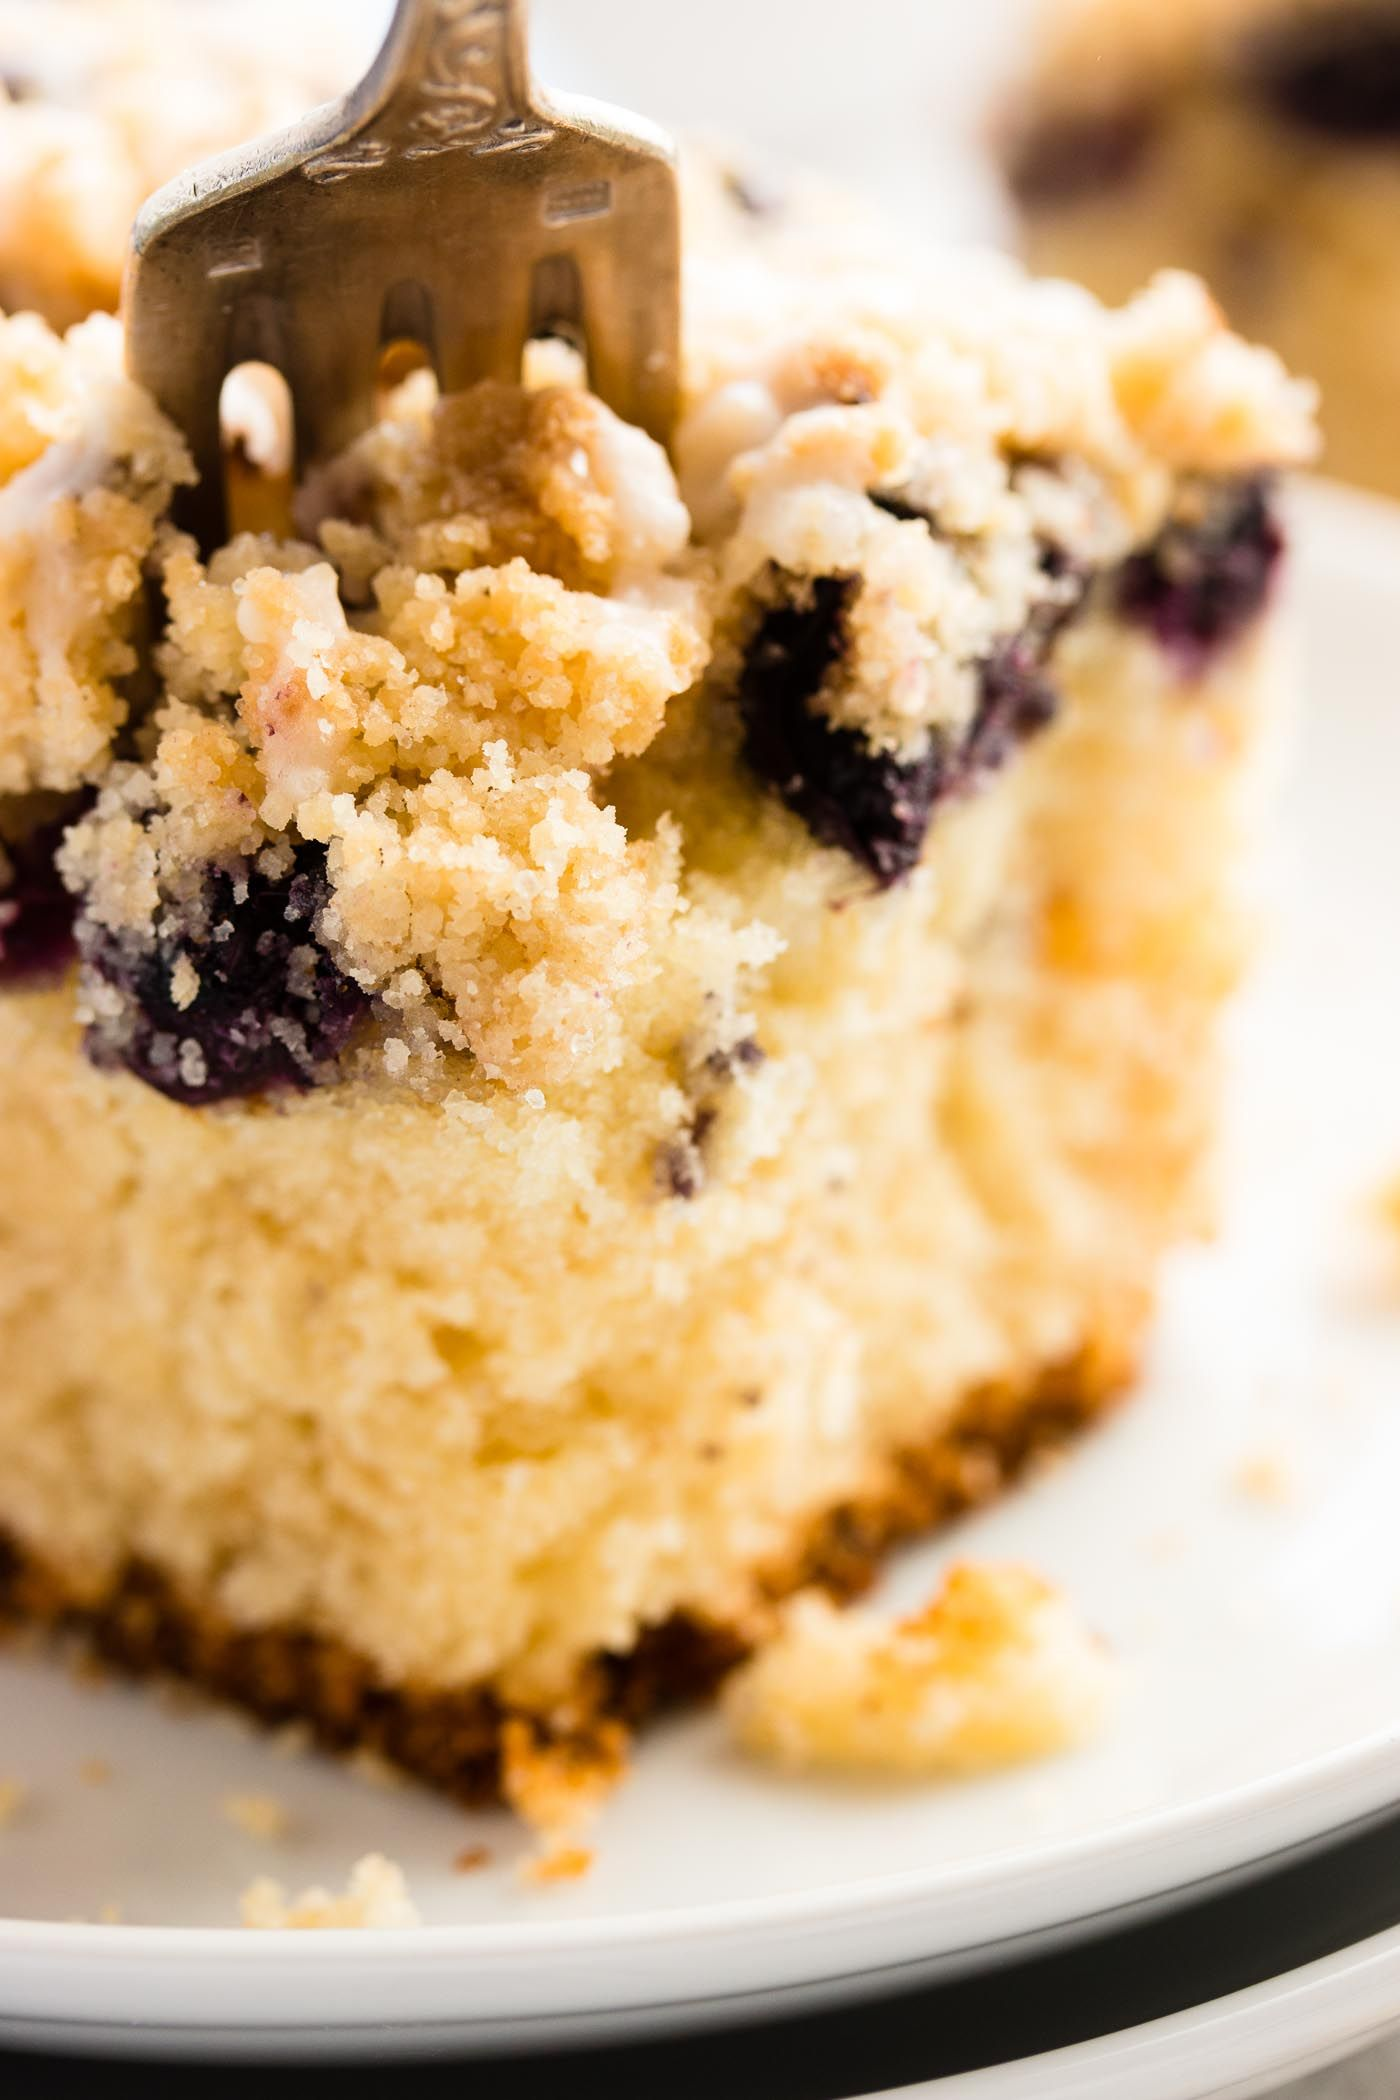 Sour Cream Lemon Blueberry Coffee Cake Savory Nothings Cake Recipe With Sour Cream Blueberry Cake Recipes Blueberry Coffee Cake Recipe